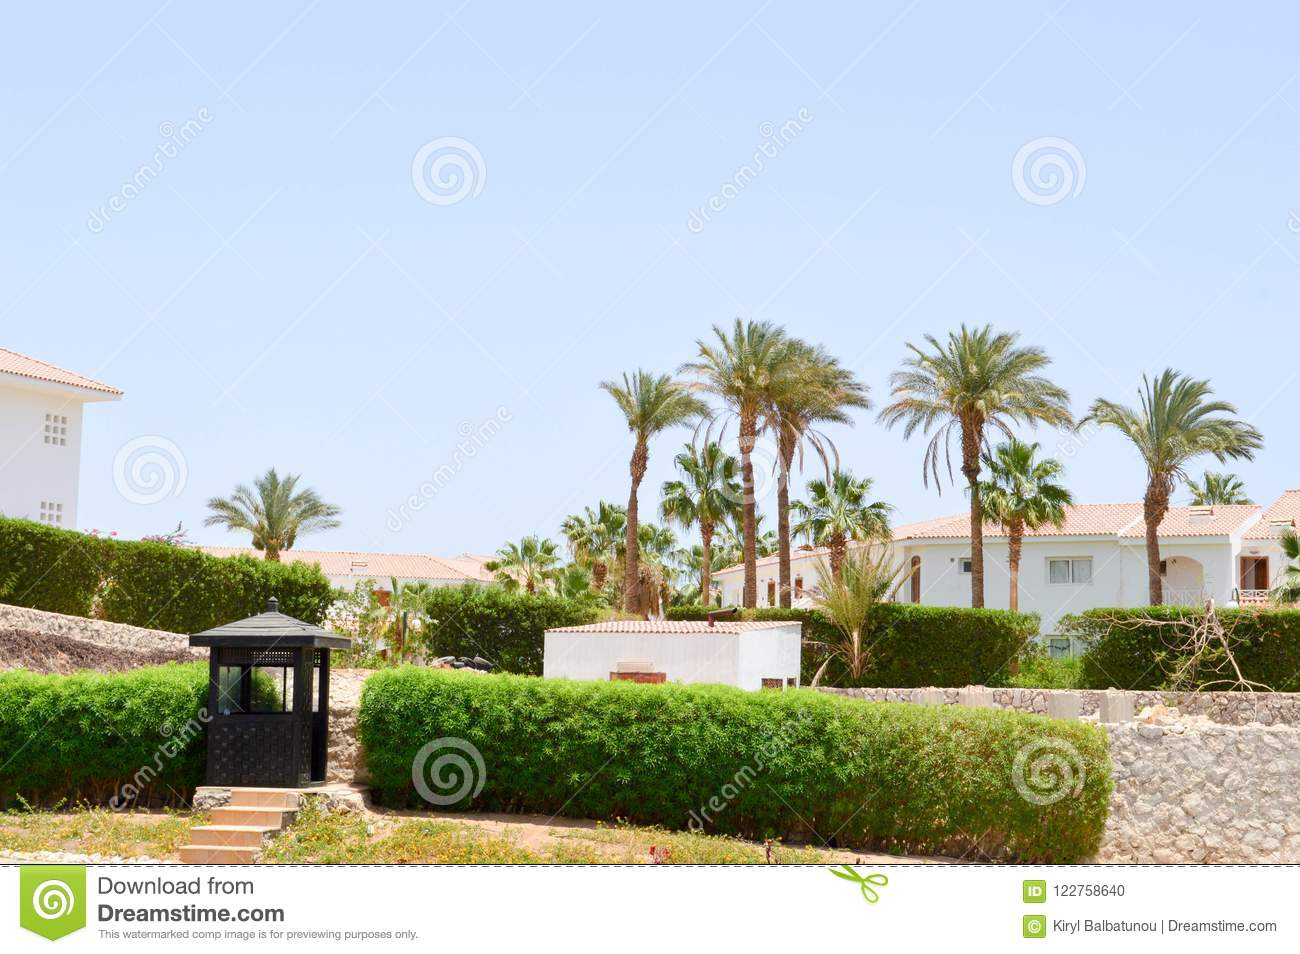 wooden black guard booth guarding post outdoors warm tropical exotic country spa background background green plants palm trees